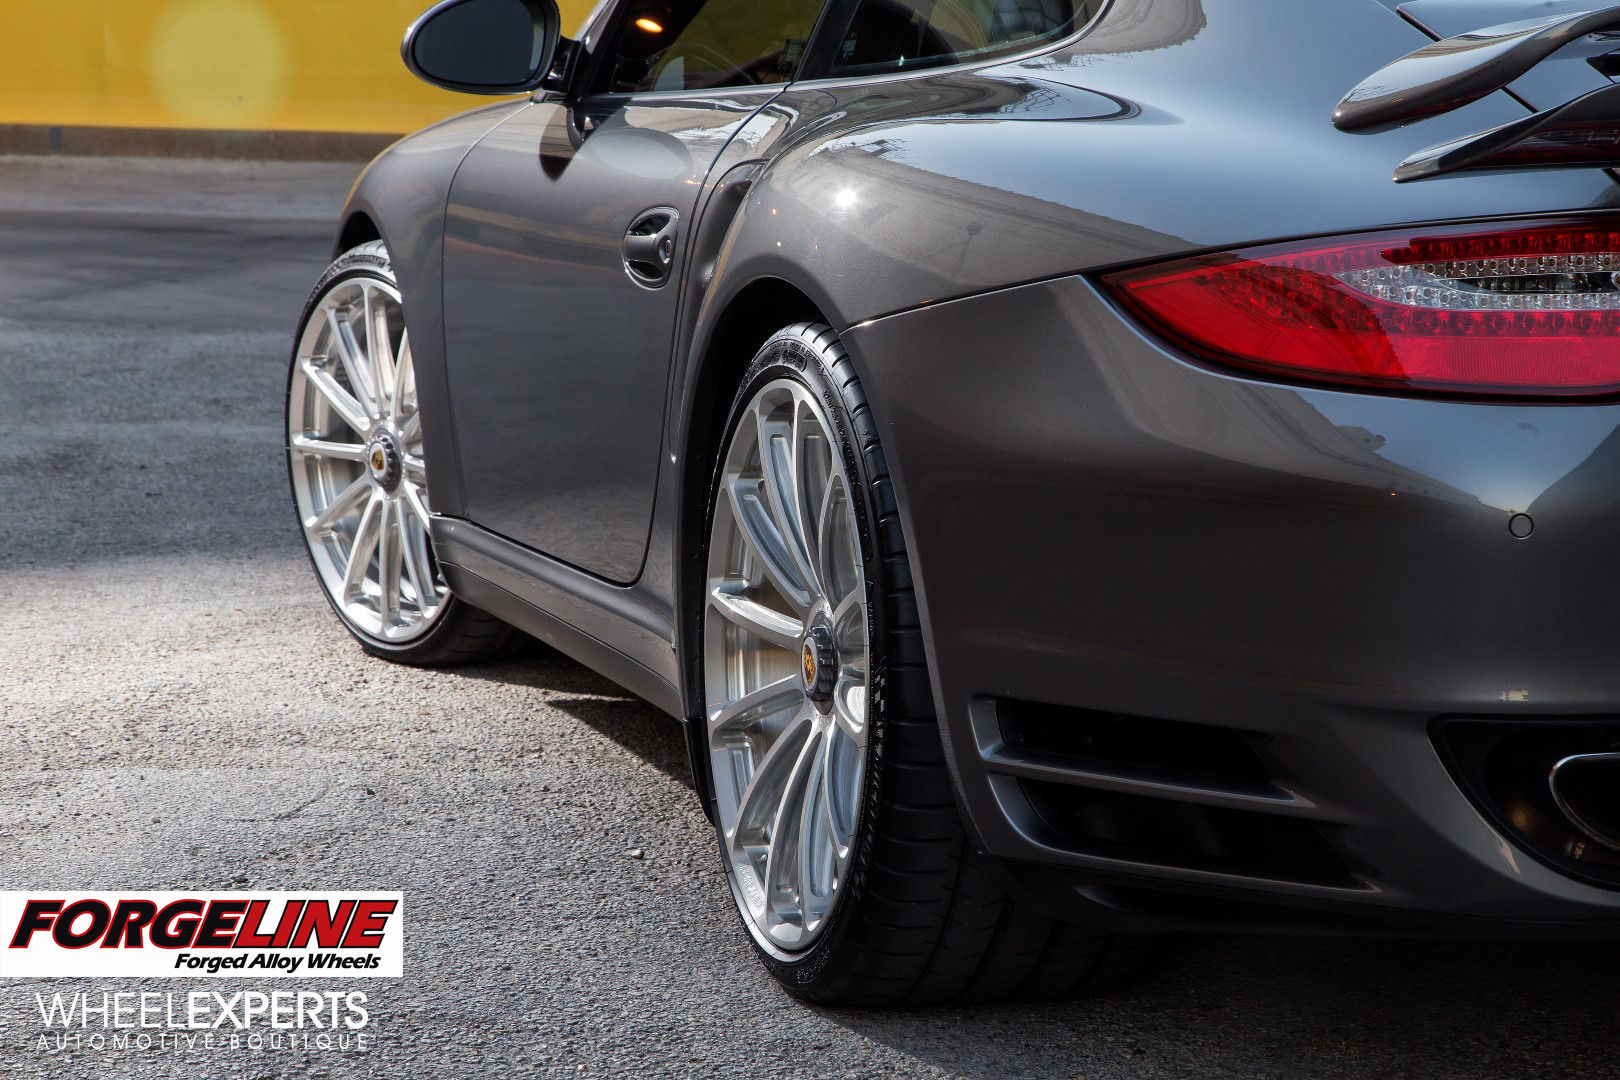 2013 Porsche 911 | Wheel Experts 997 Porsche 911 Turbo on Forgeline One Piece Forged Monoblock GT1 Wheels